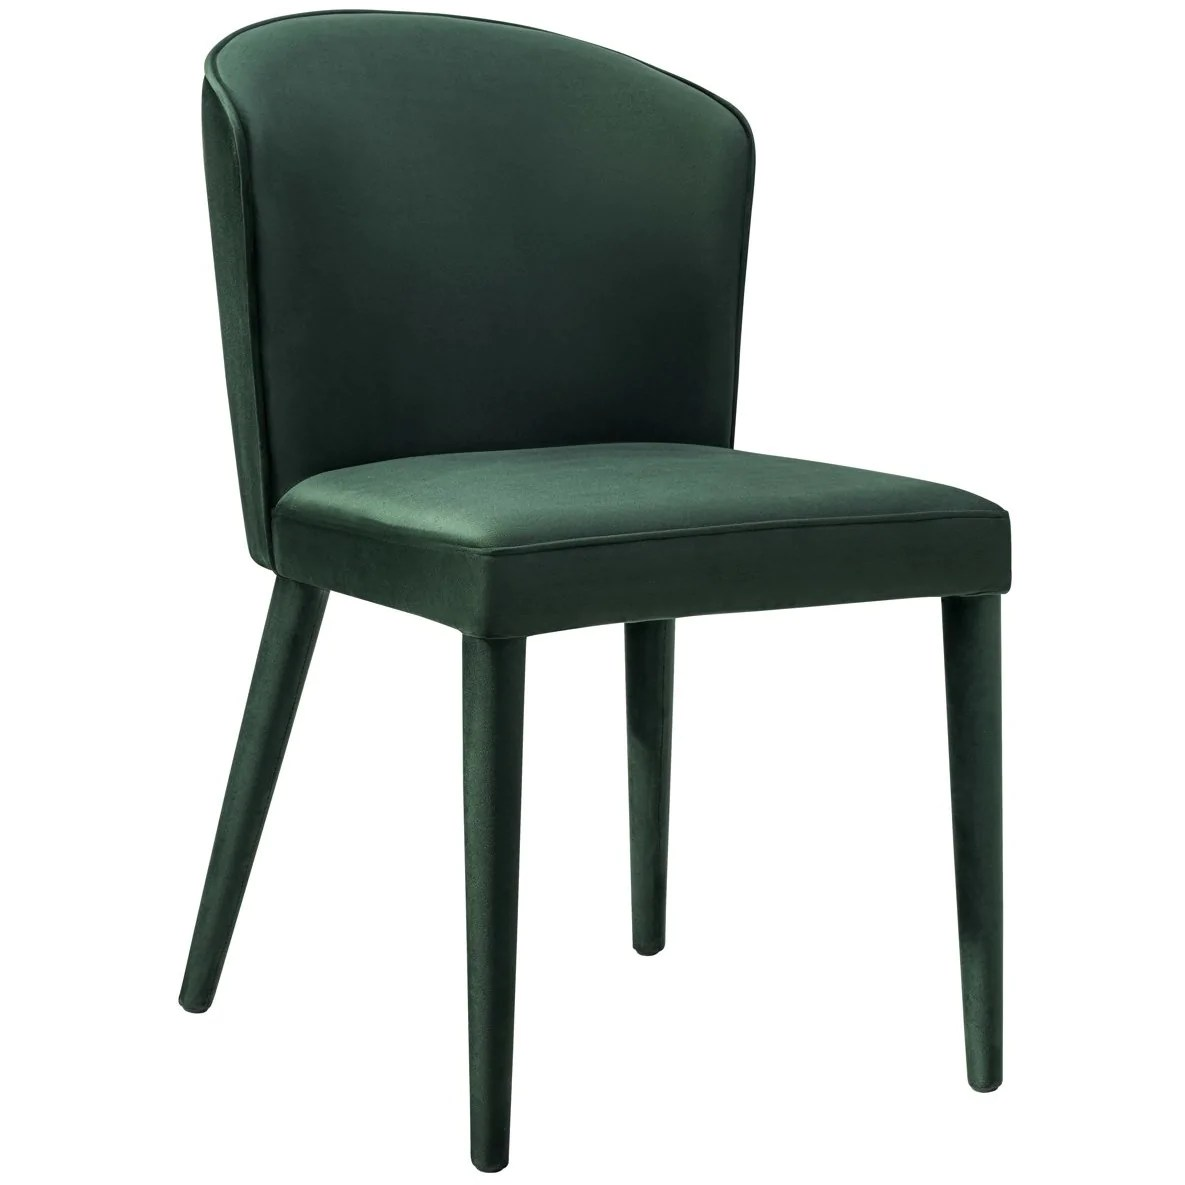 modern green dining chairs wedding chair covers and sashes for hire tov furniture metropolitan forest velvet d54 minimal